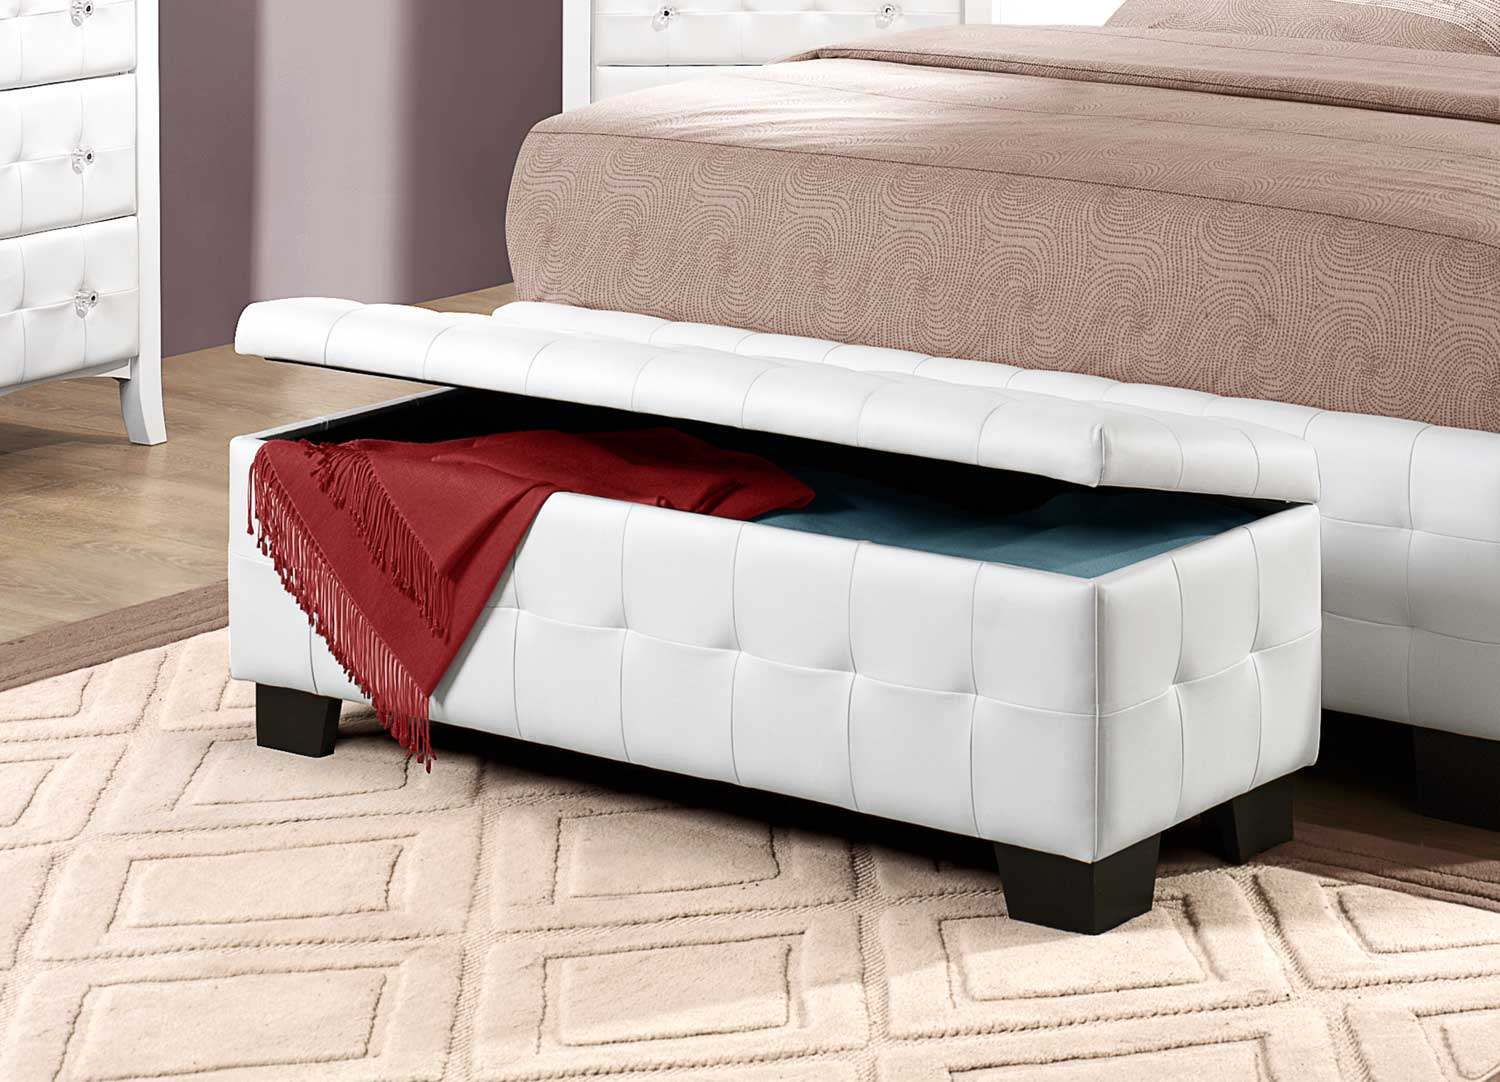 Upholstered Bench with Storage